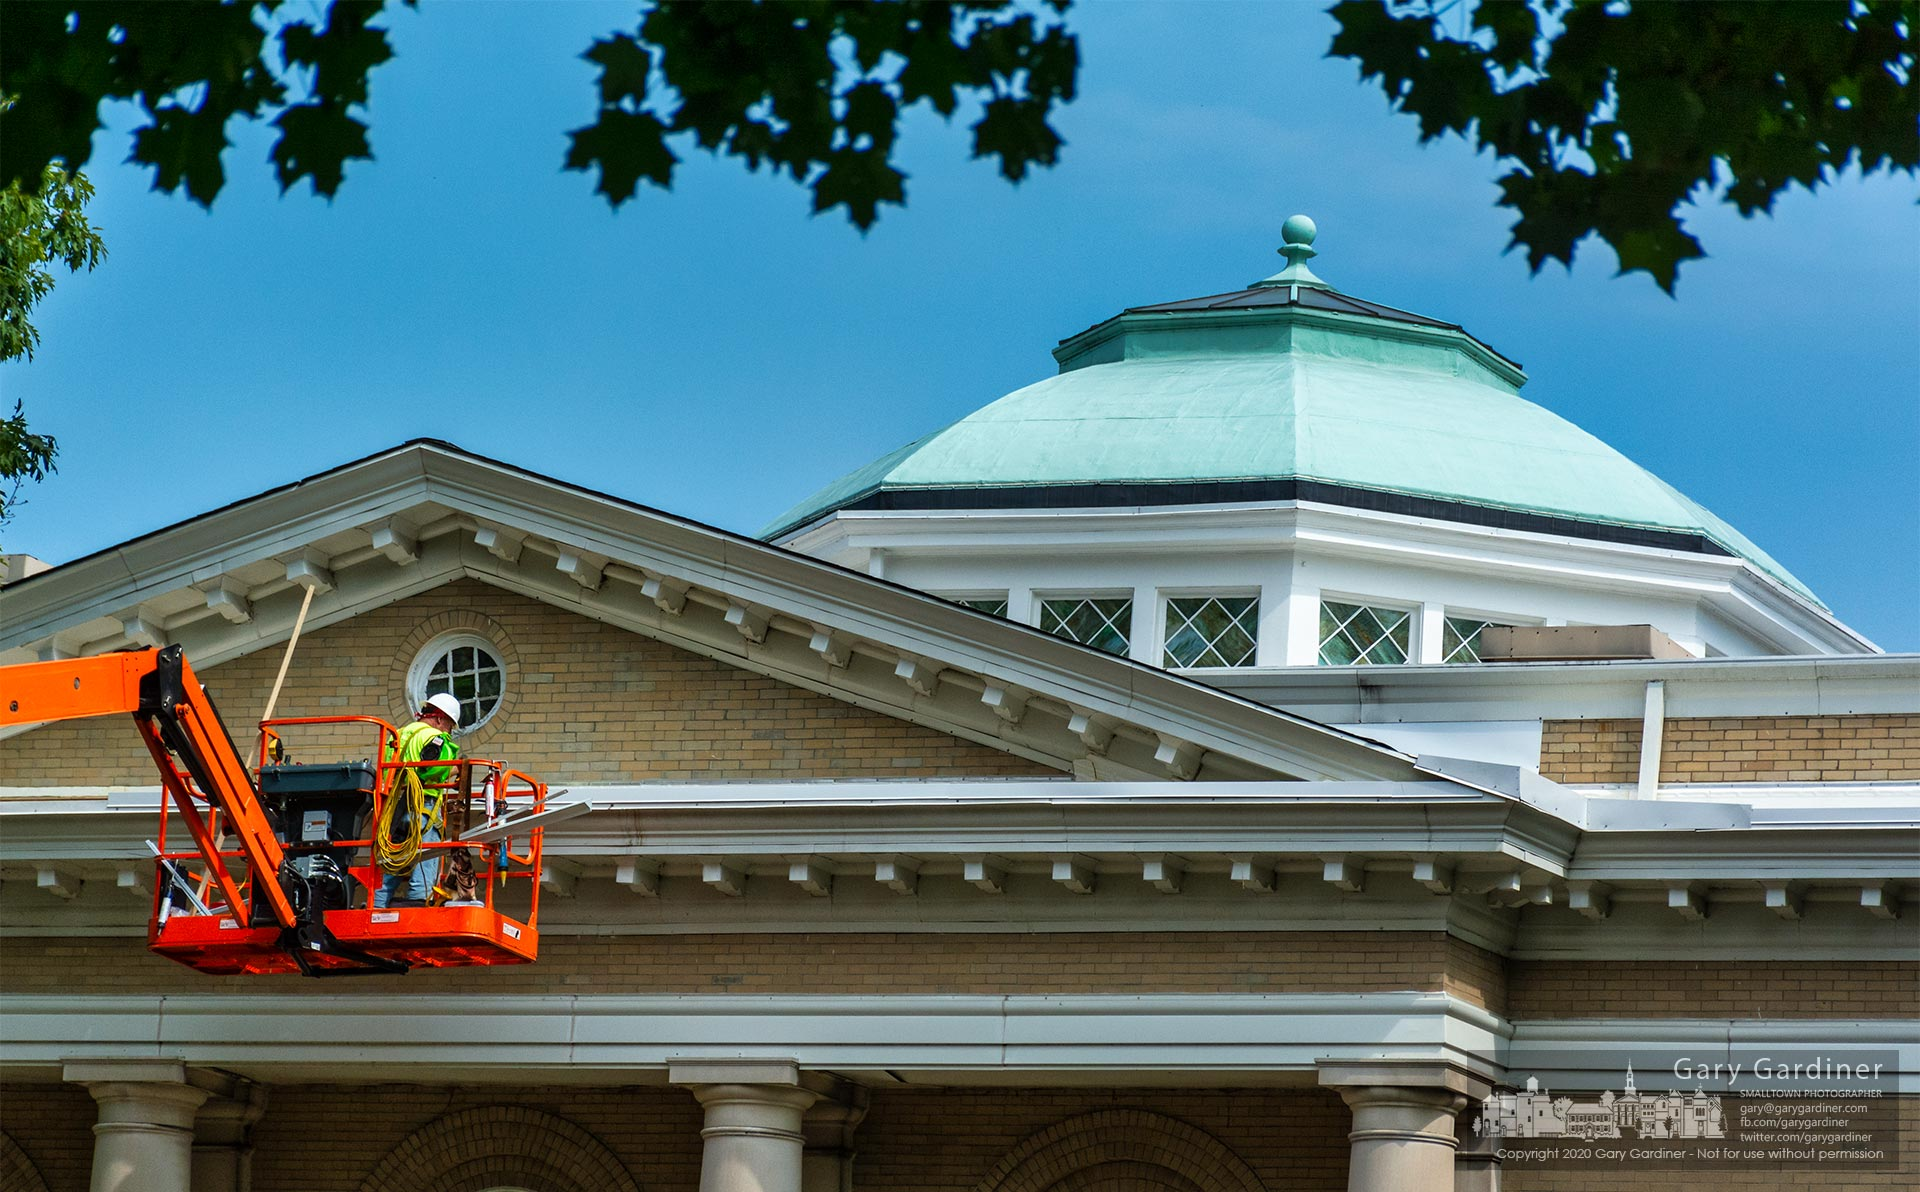 A worker installs new gutters and seals along the roofline of the Church of the Master on Grove Street. My Final Photo for Sept. 24.